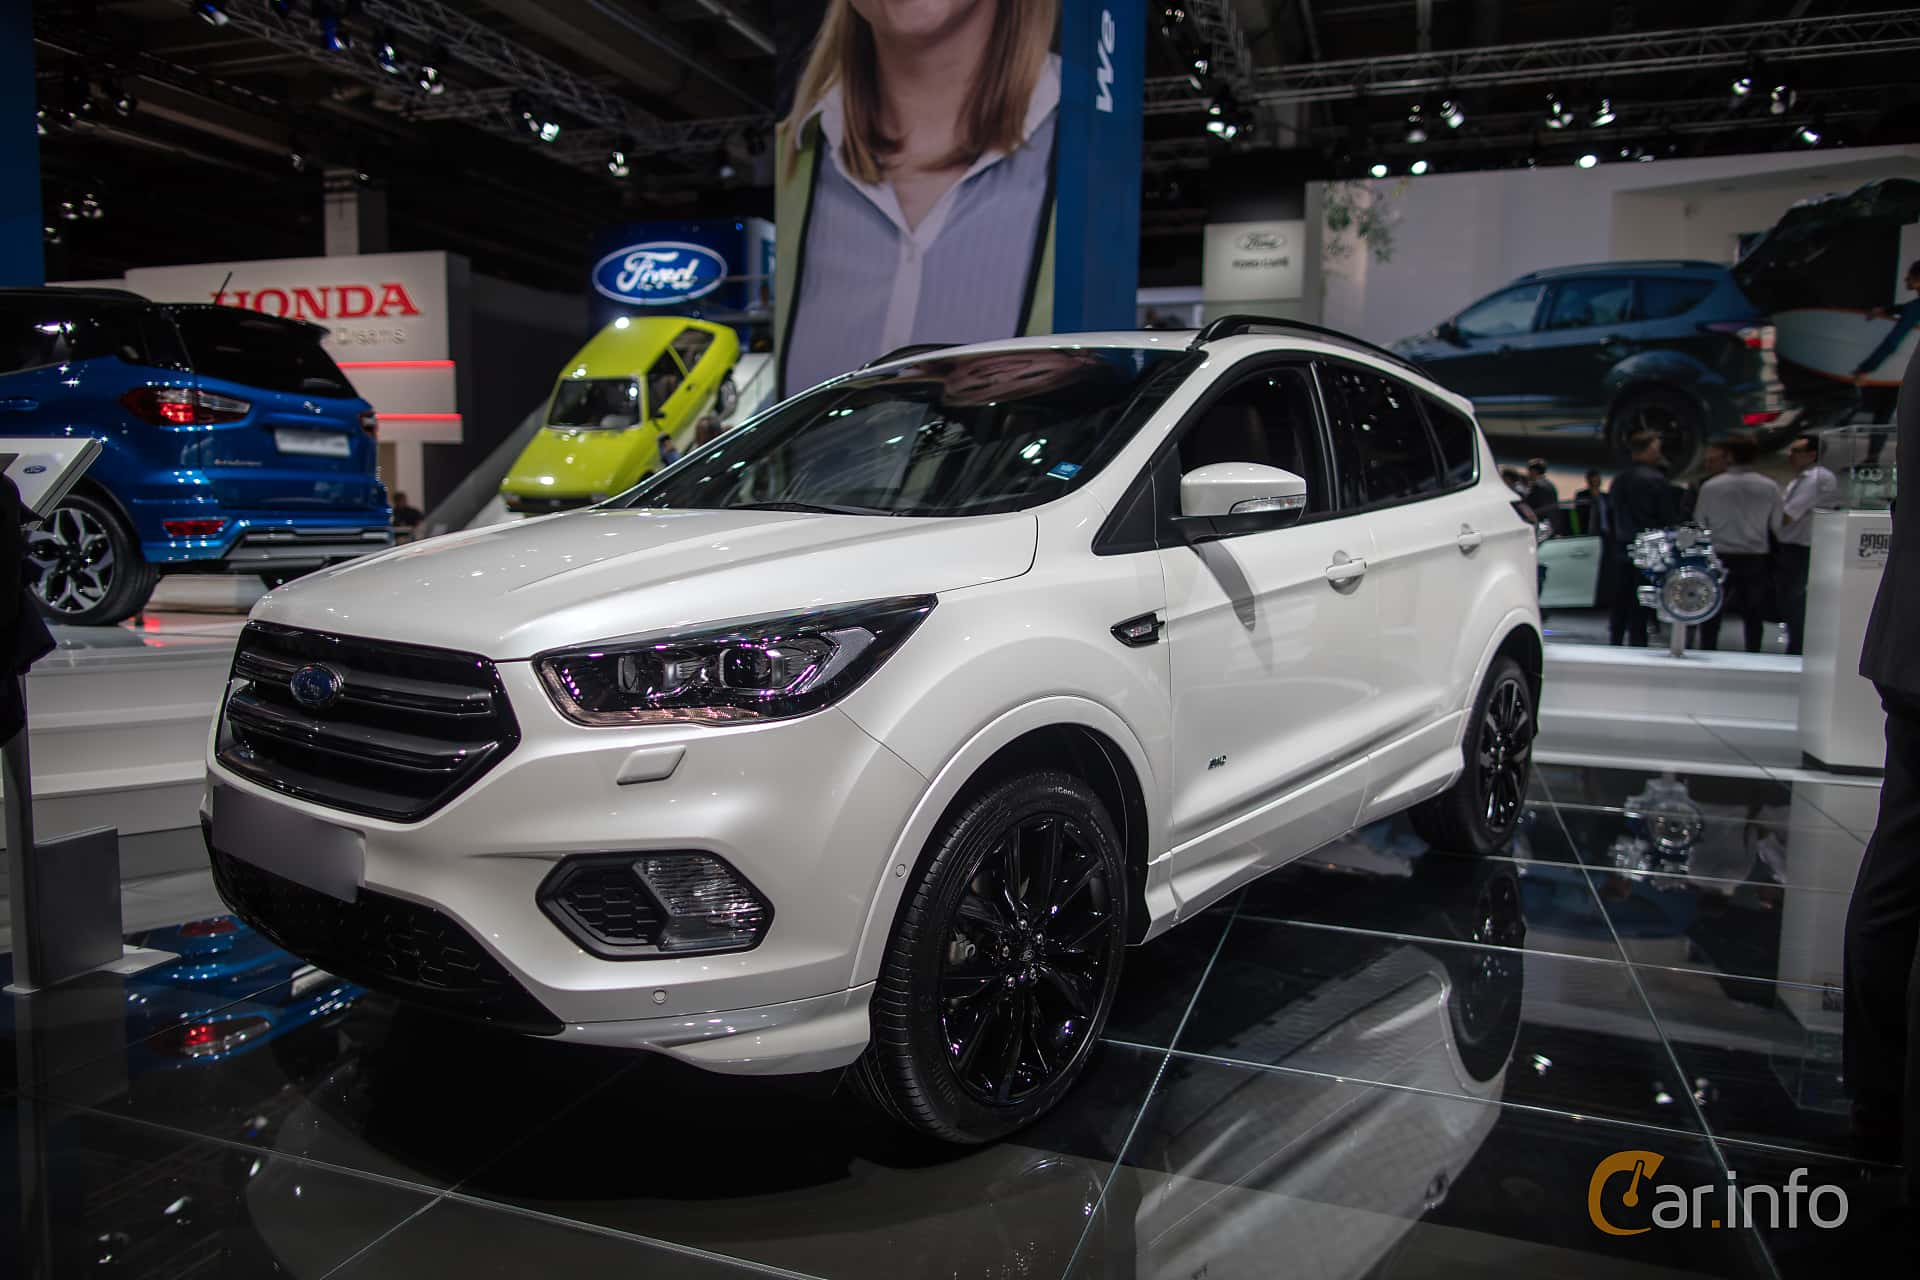 ford kuga 2 0 tdci awd powershift 180hp 2018 at iaa 2017. Black Bedroom Furniture Sets. Home Design Ideas